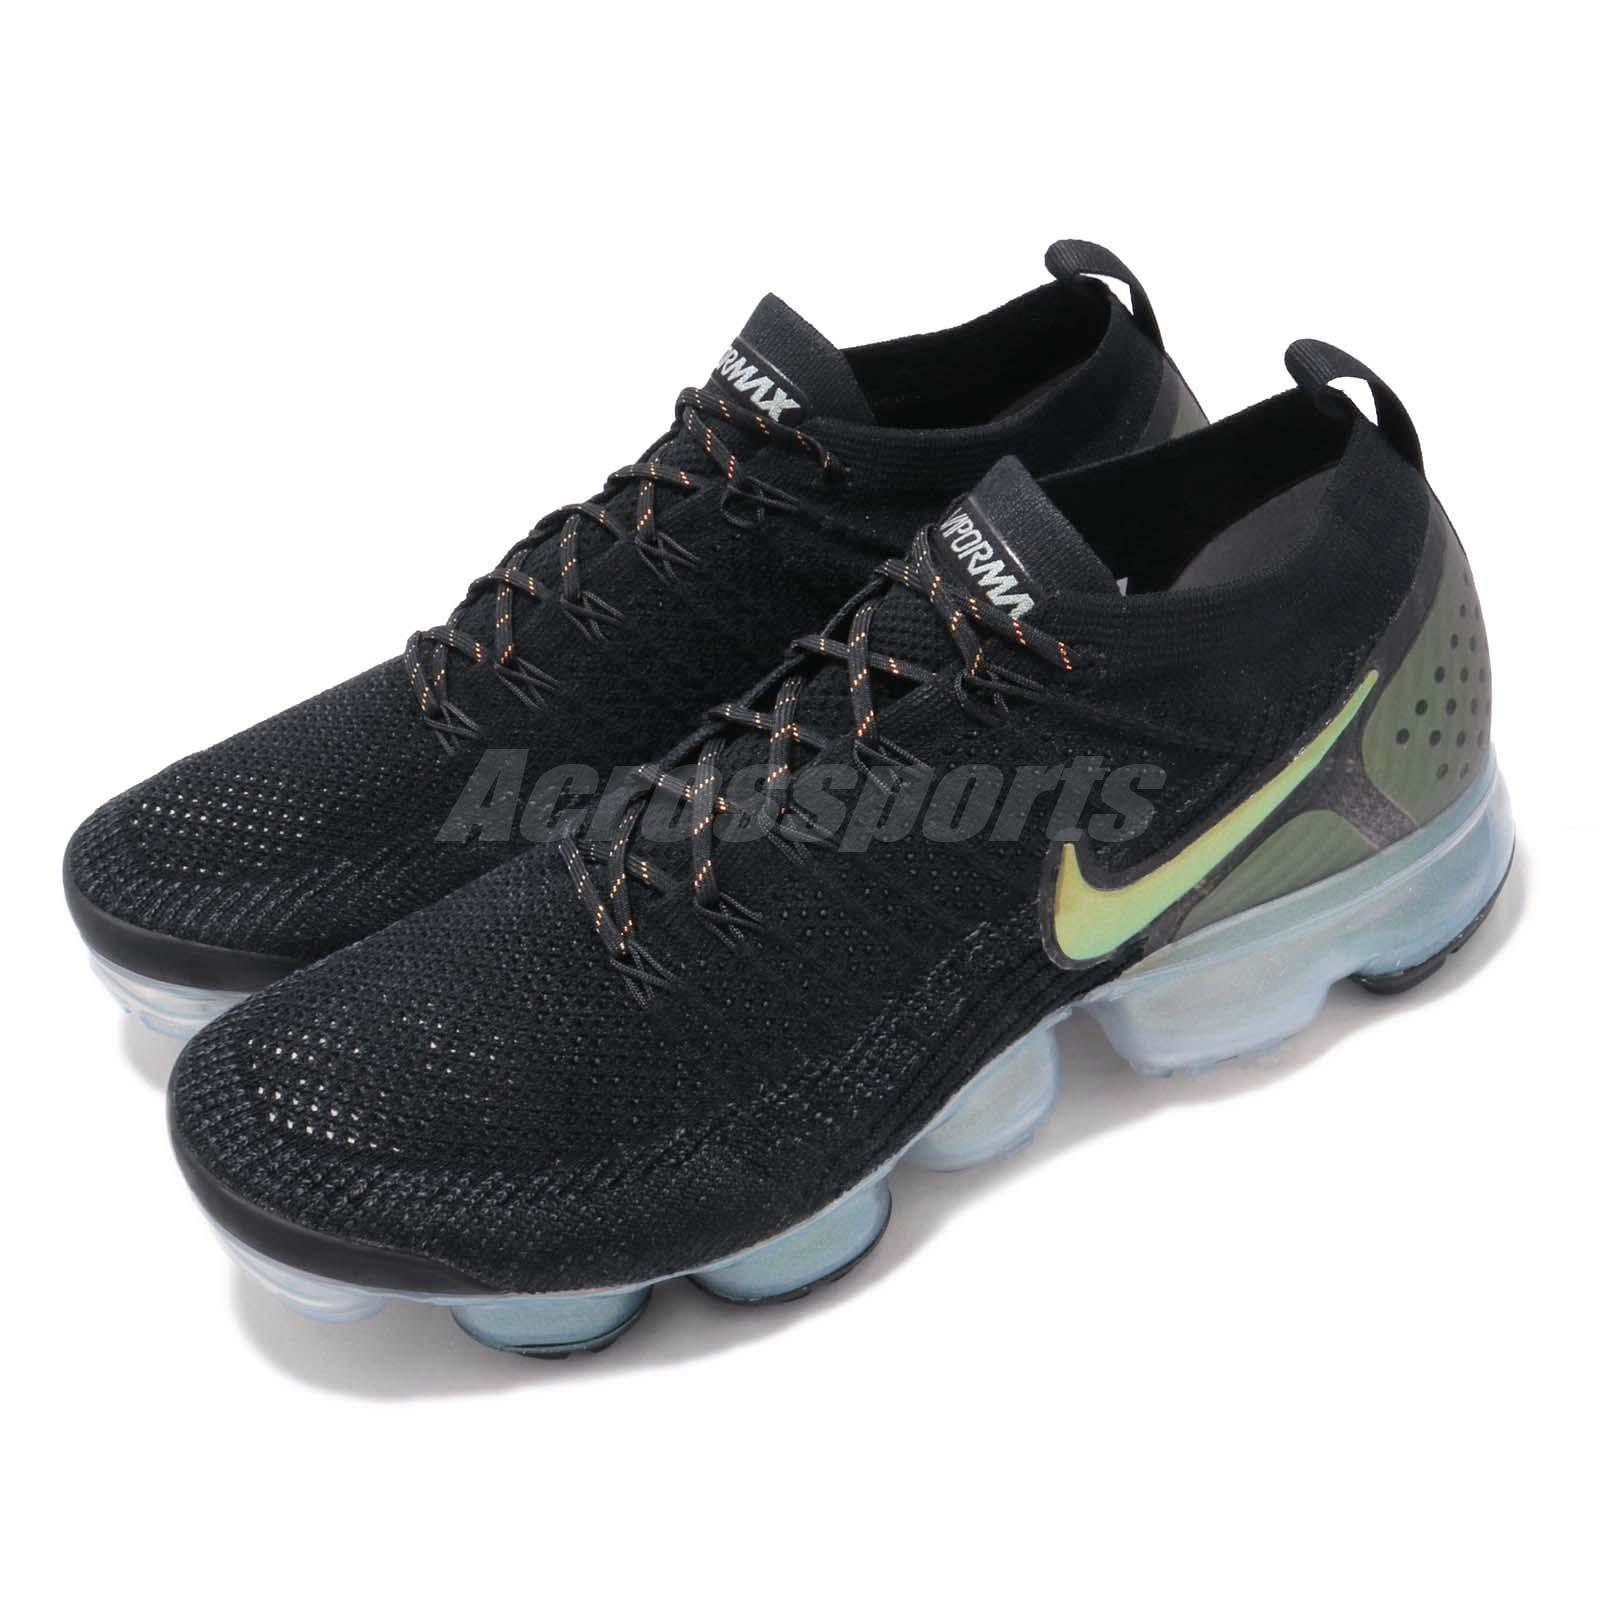 half off 2d446 611ed Details about Nike Air Vapormax Flyknit 2 Black Gold Men Running Shoes  Sneakers 942842-015